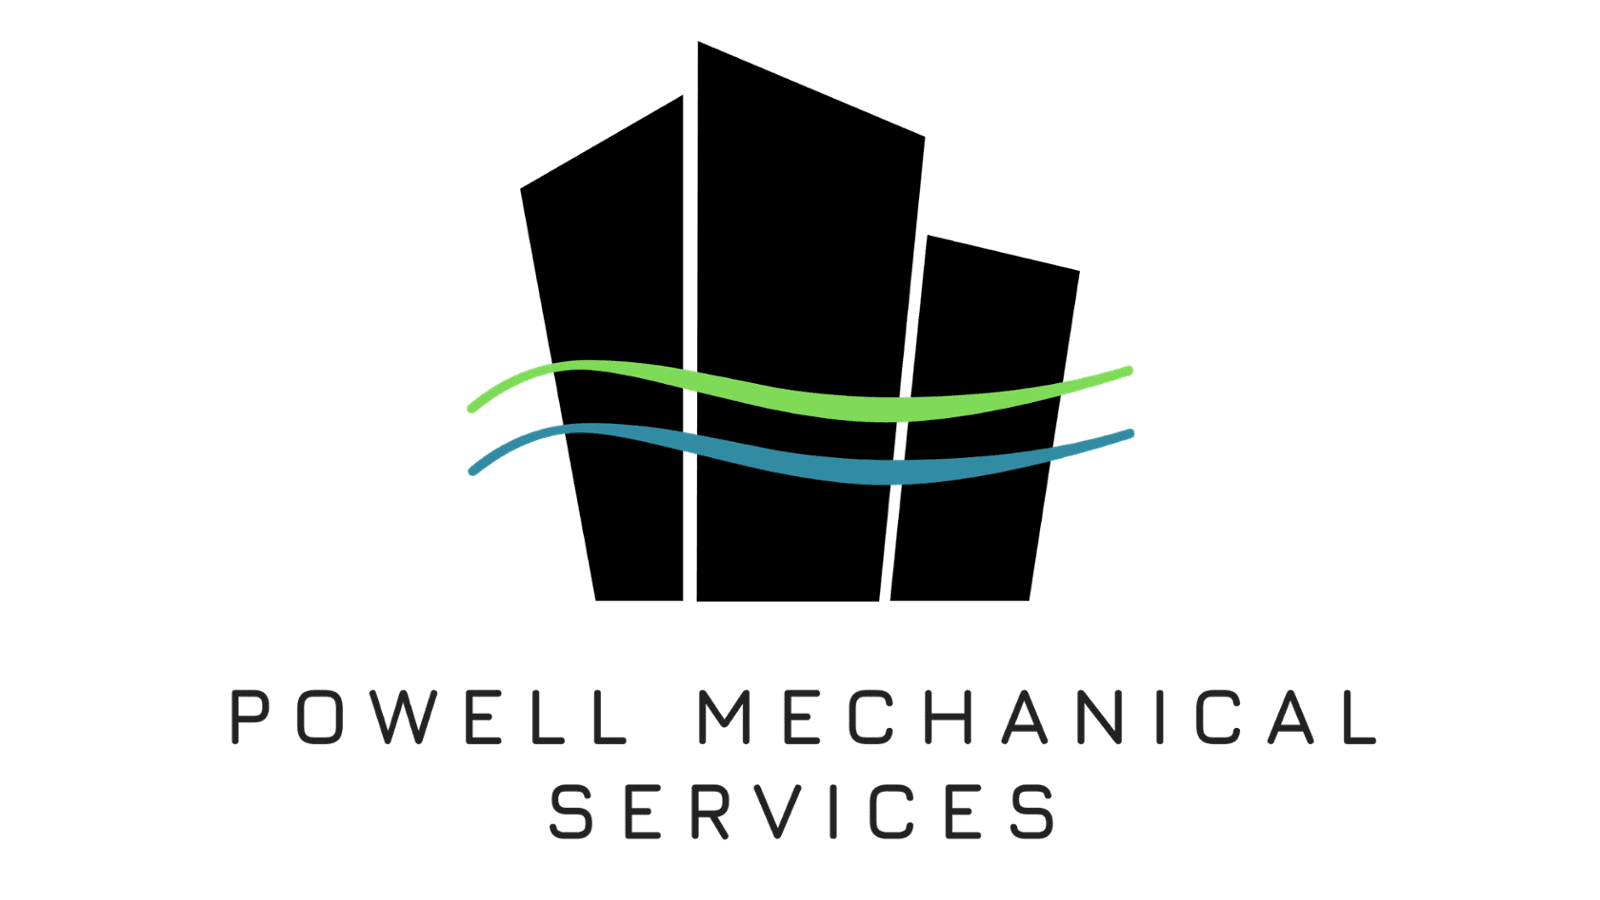 Powell Mechanical Services LLC